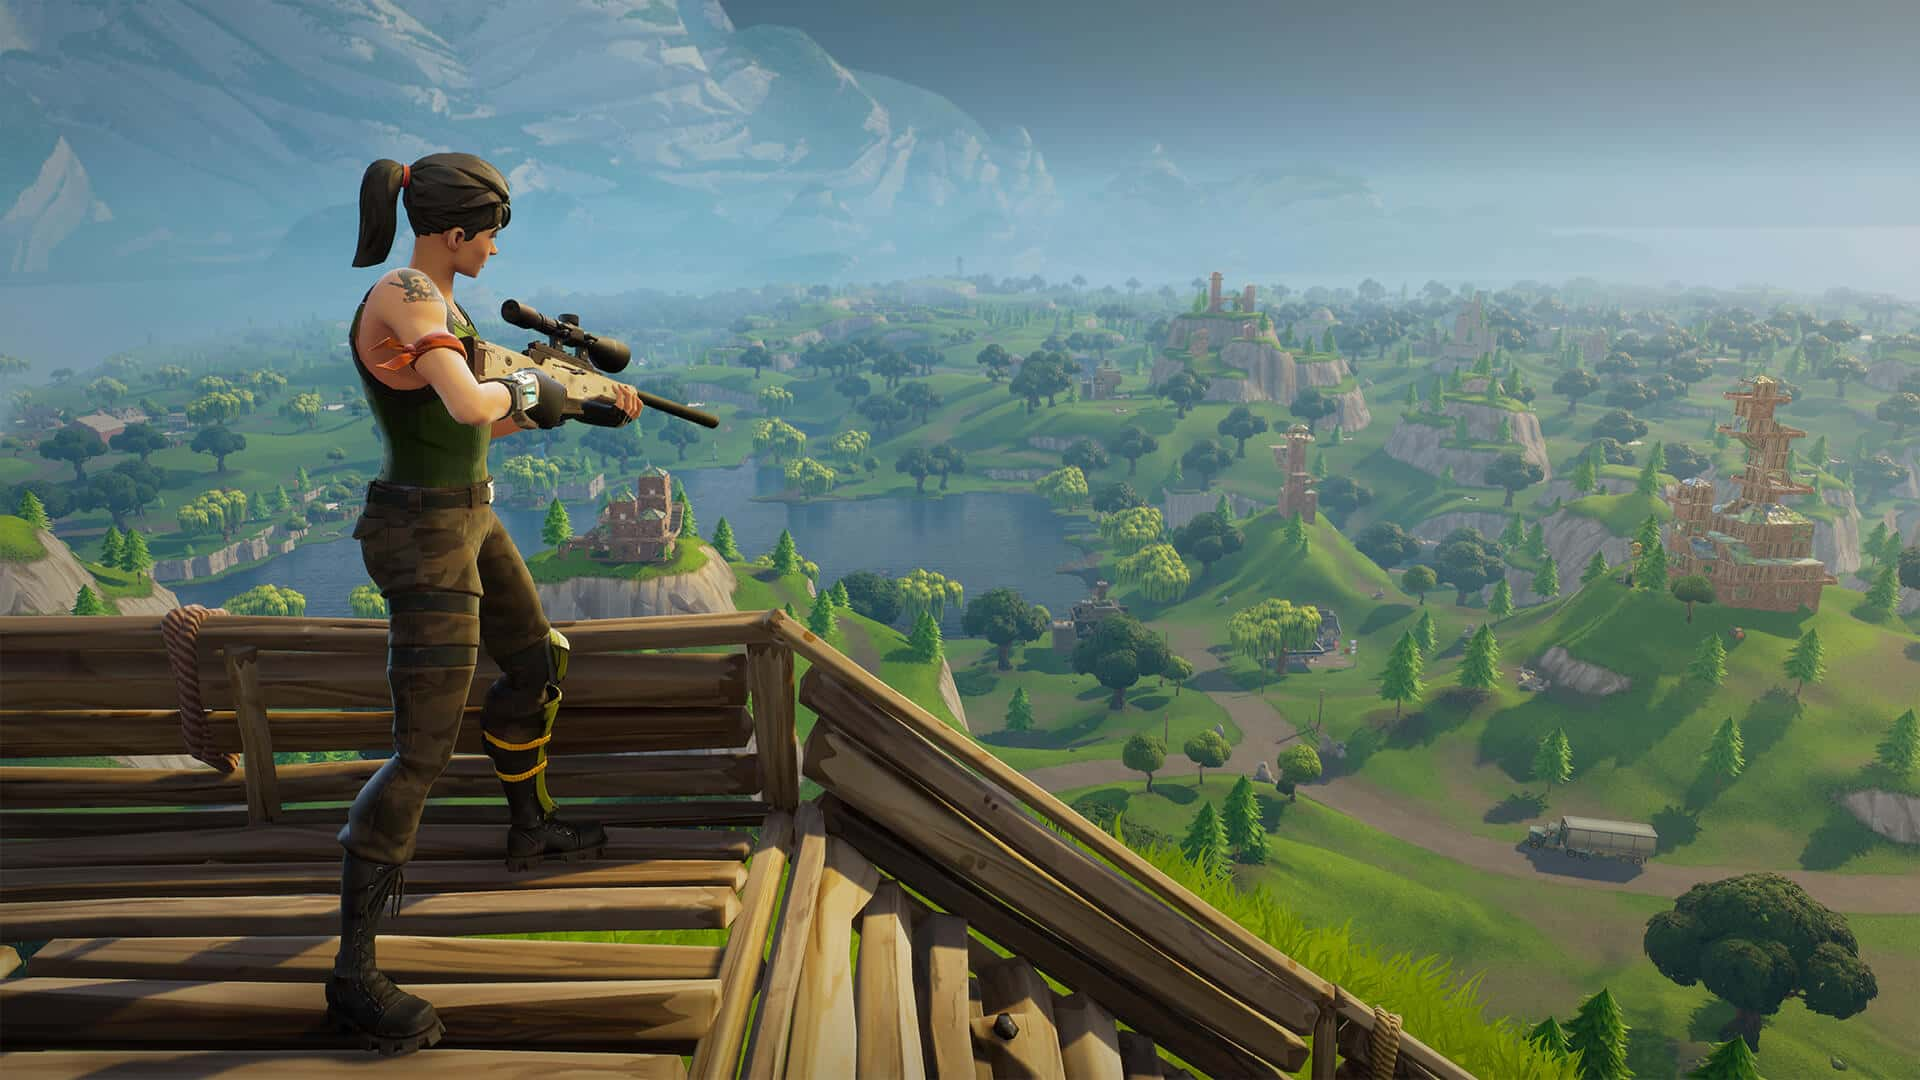 Fortnite Stats Not Working, Fortnite Stats Not Working: Why Is Fortnite Not Counting Wins? (Update), MP1st, MP1st